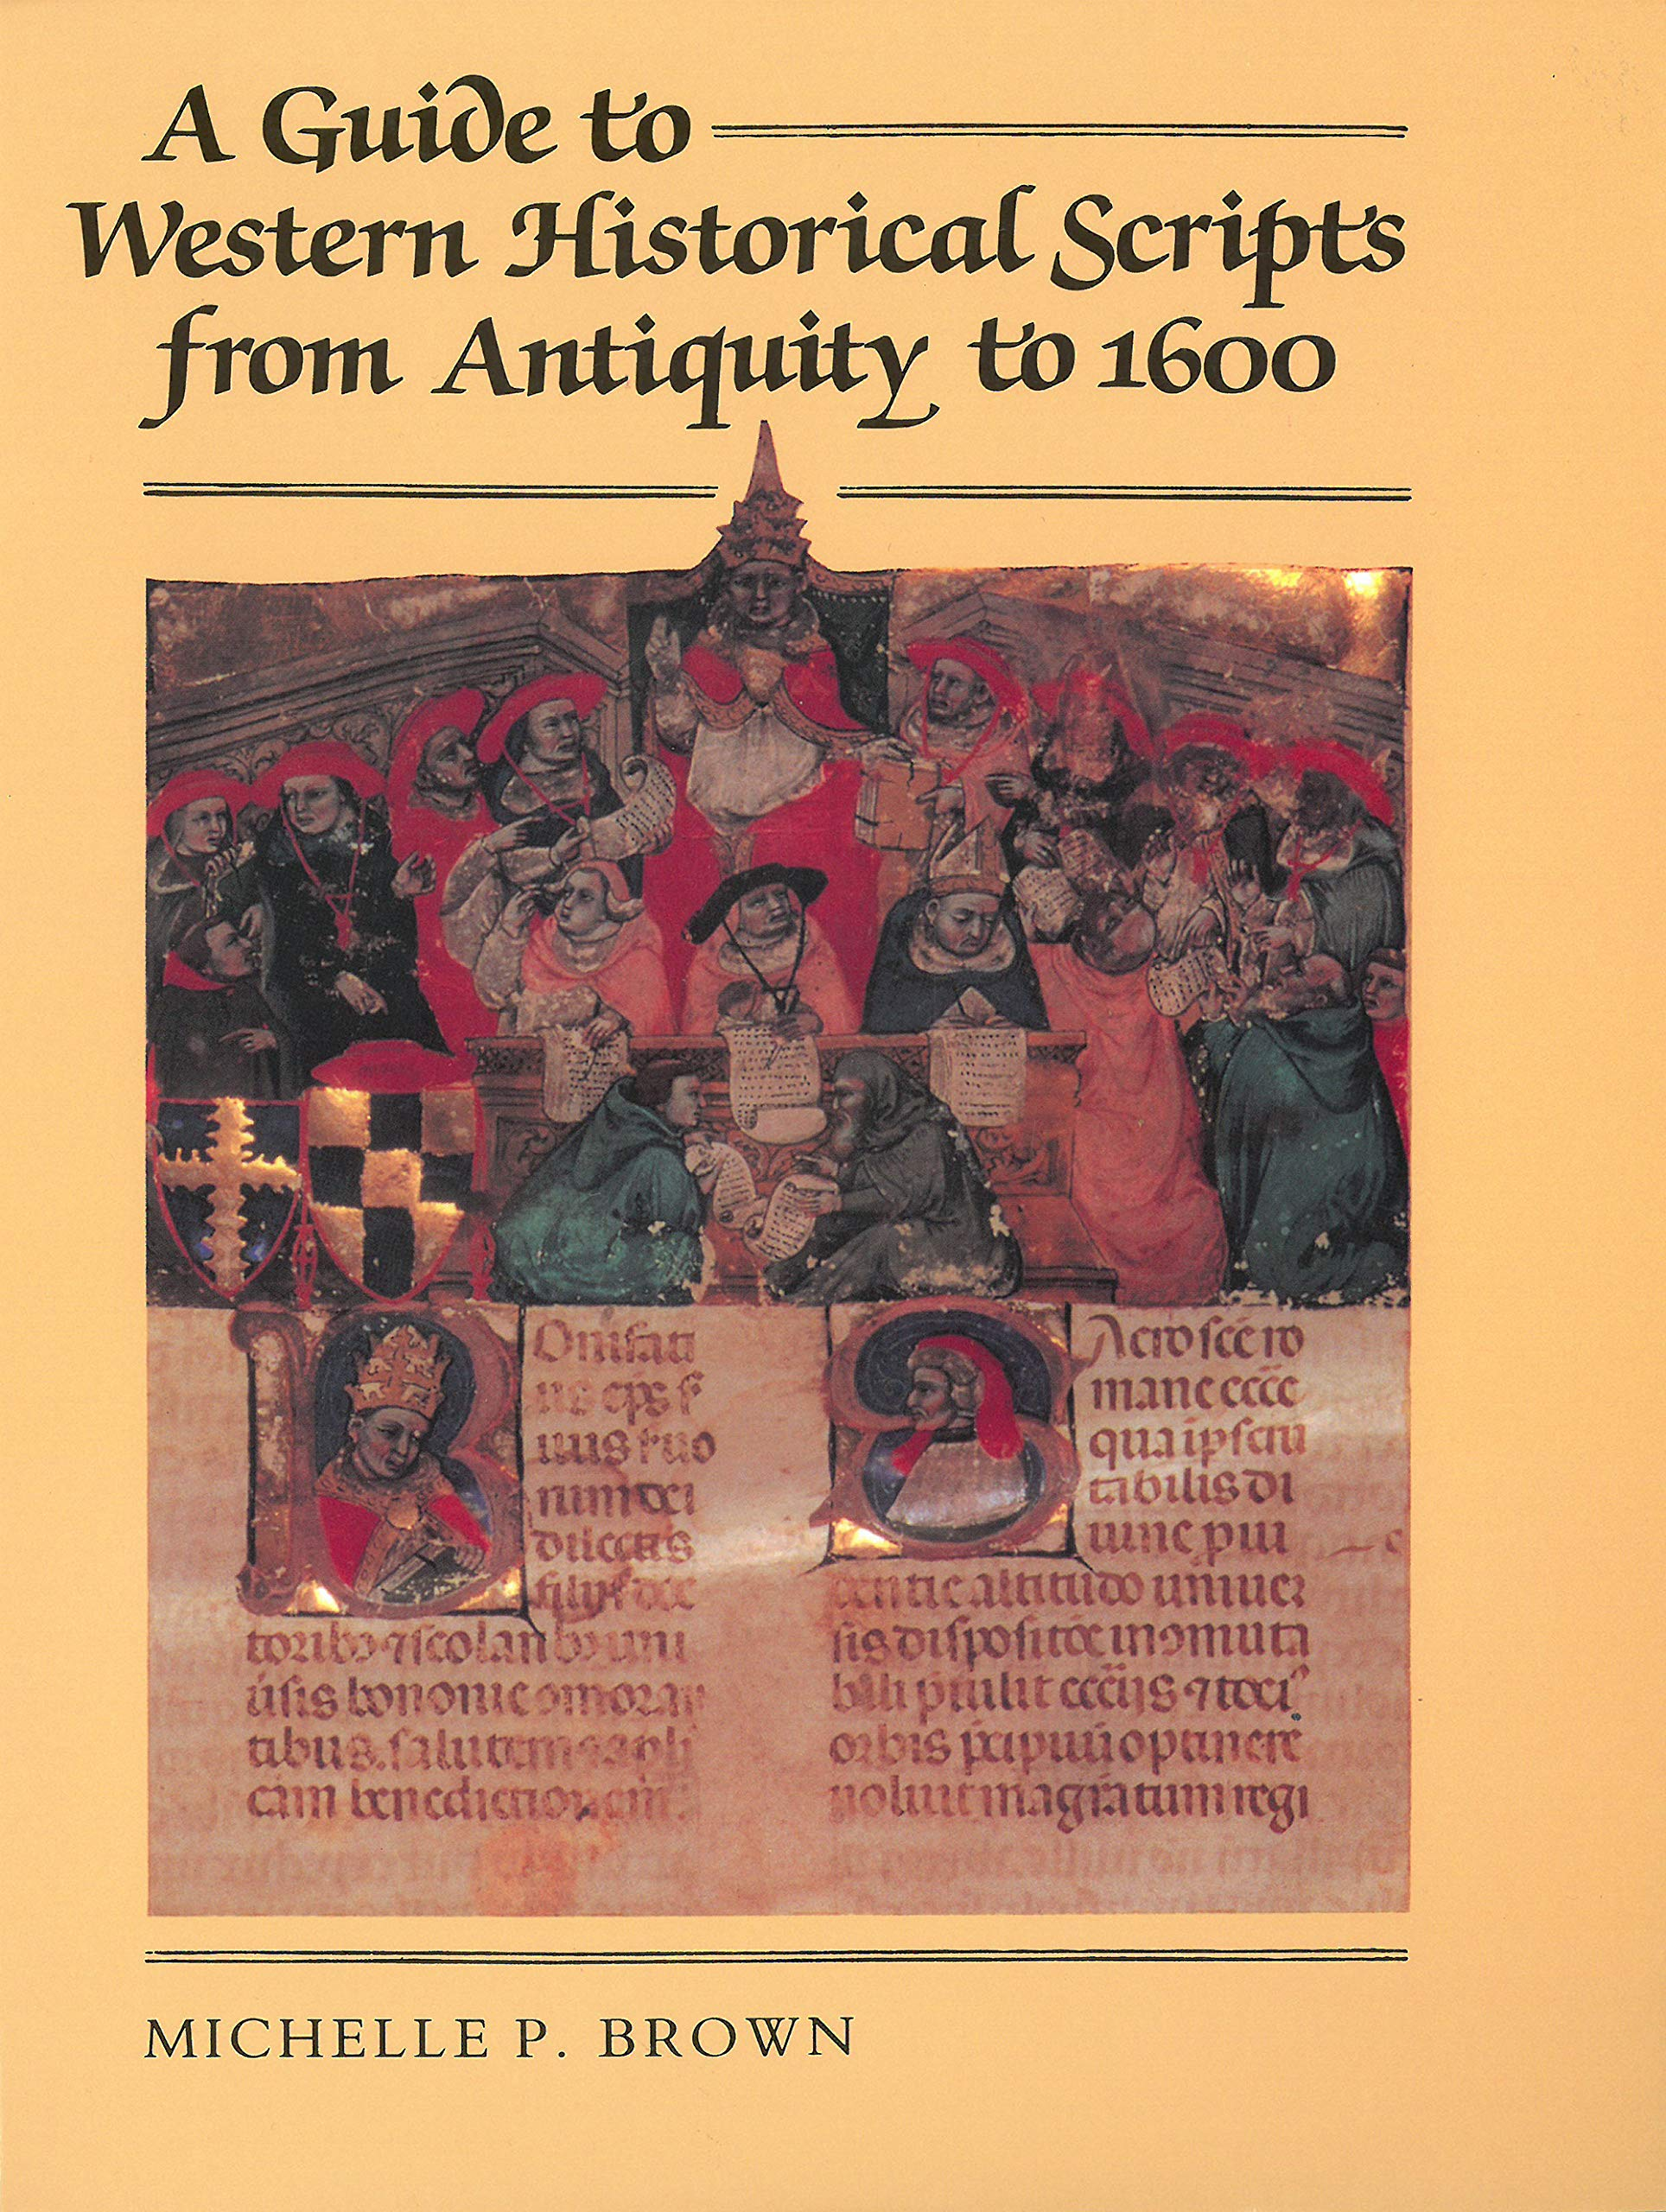 A Guide to Western Historical Scripts from Antiquity to 1600: Amazon.co.uk:  Michelle P. Brown: 9780802072061: Books